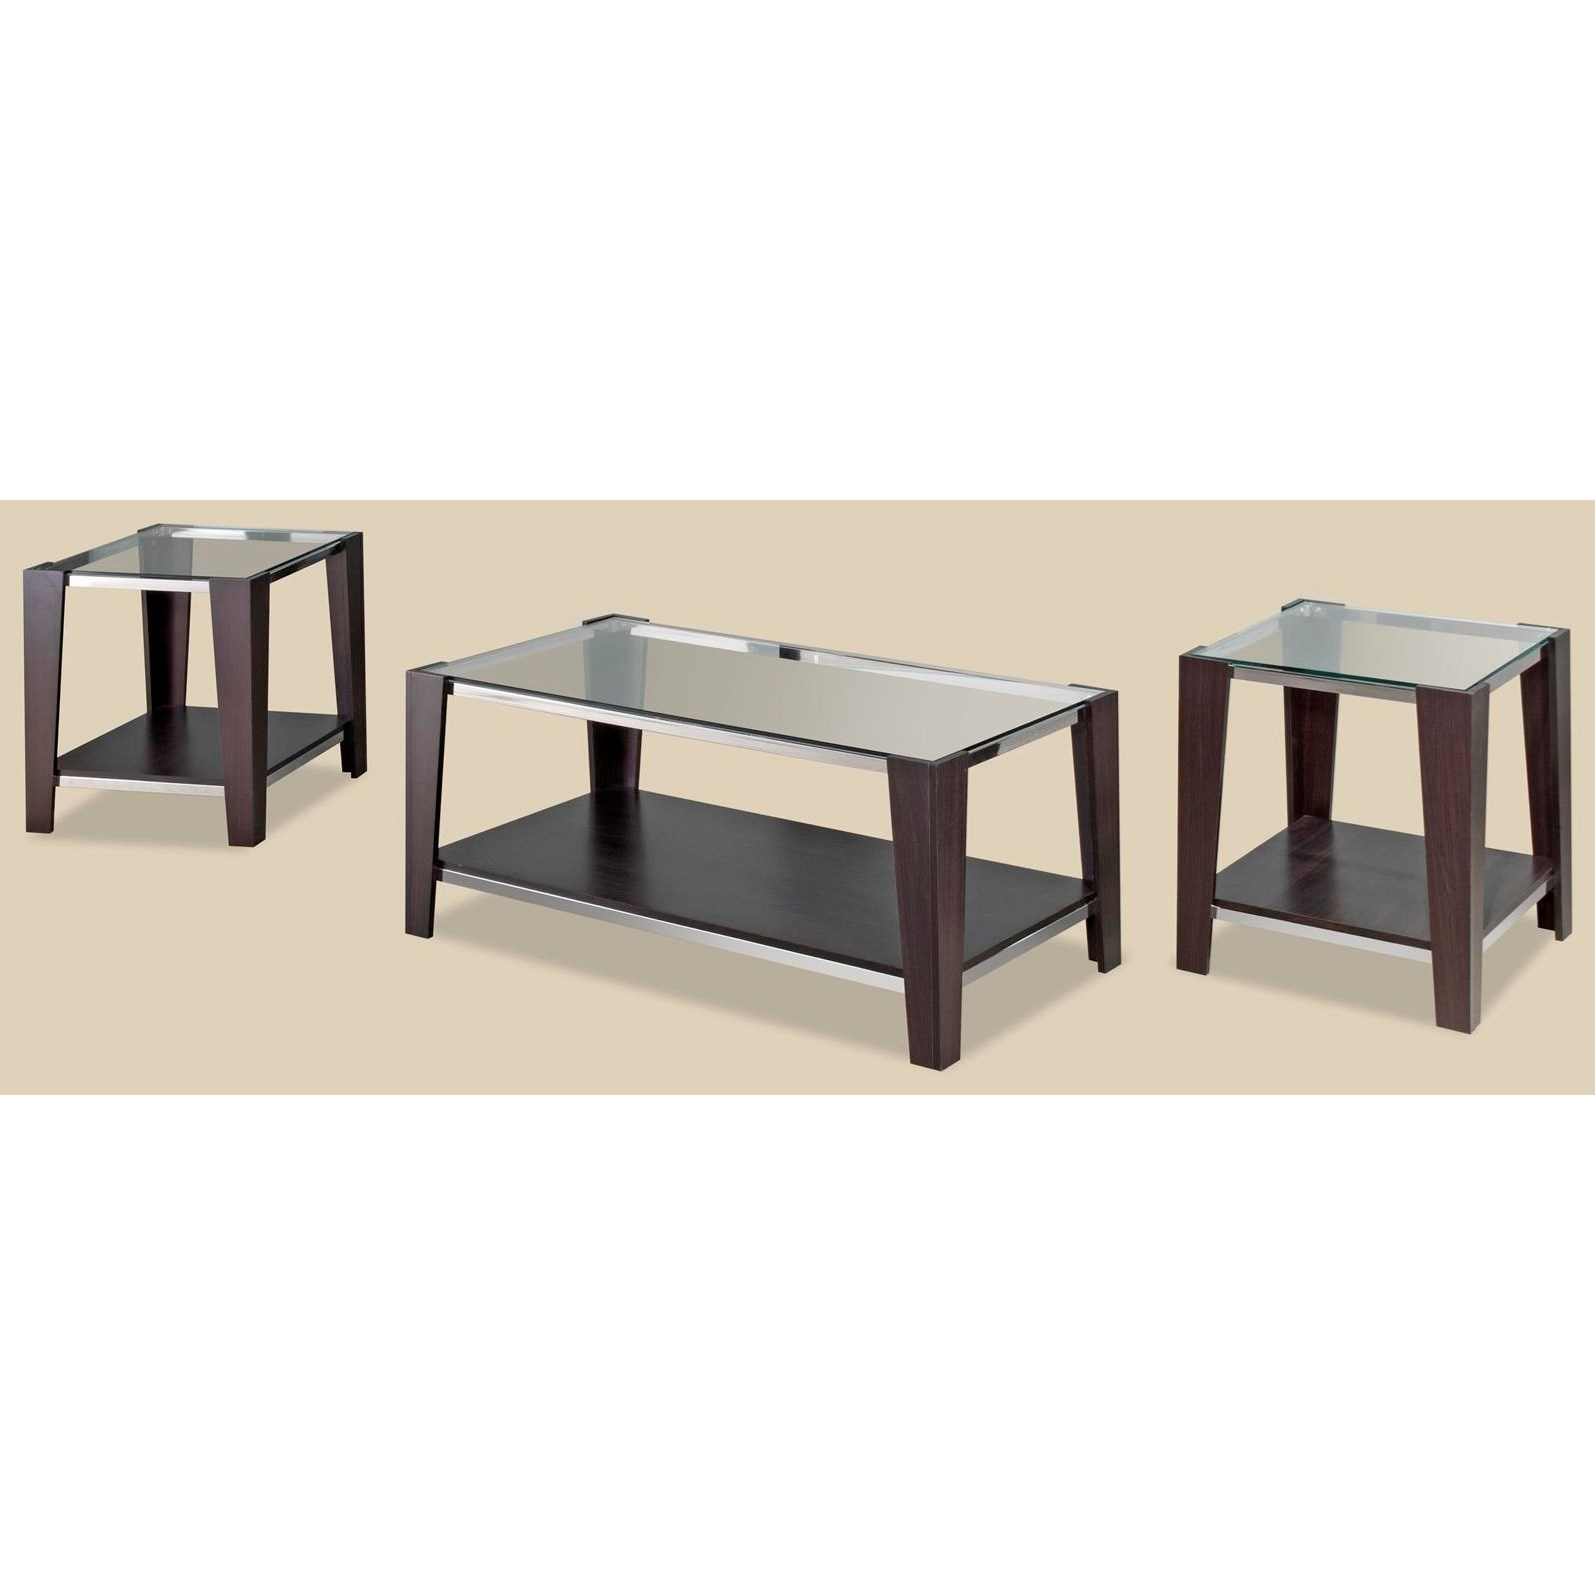 28993 Sylva Wood/Glass 3-Pack of Occasional Tables - Item Number: 9504